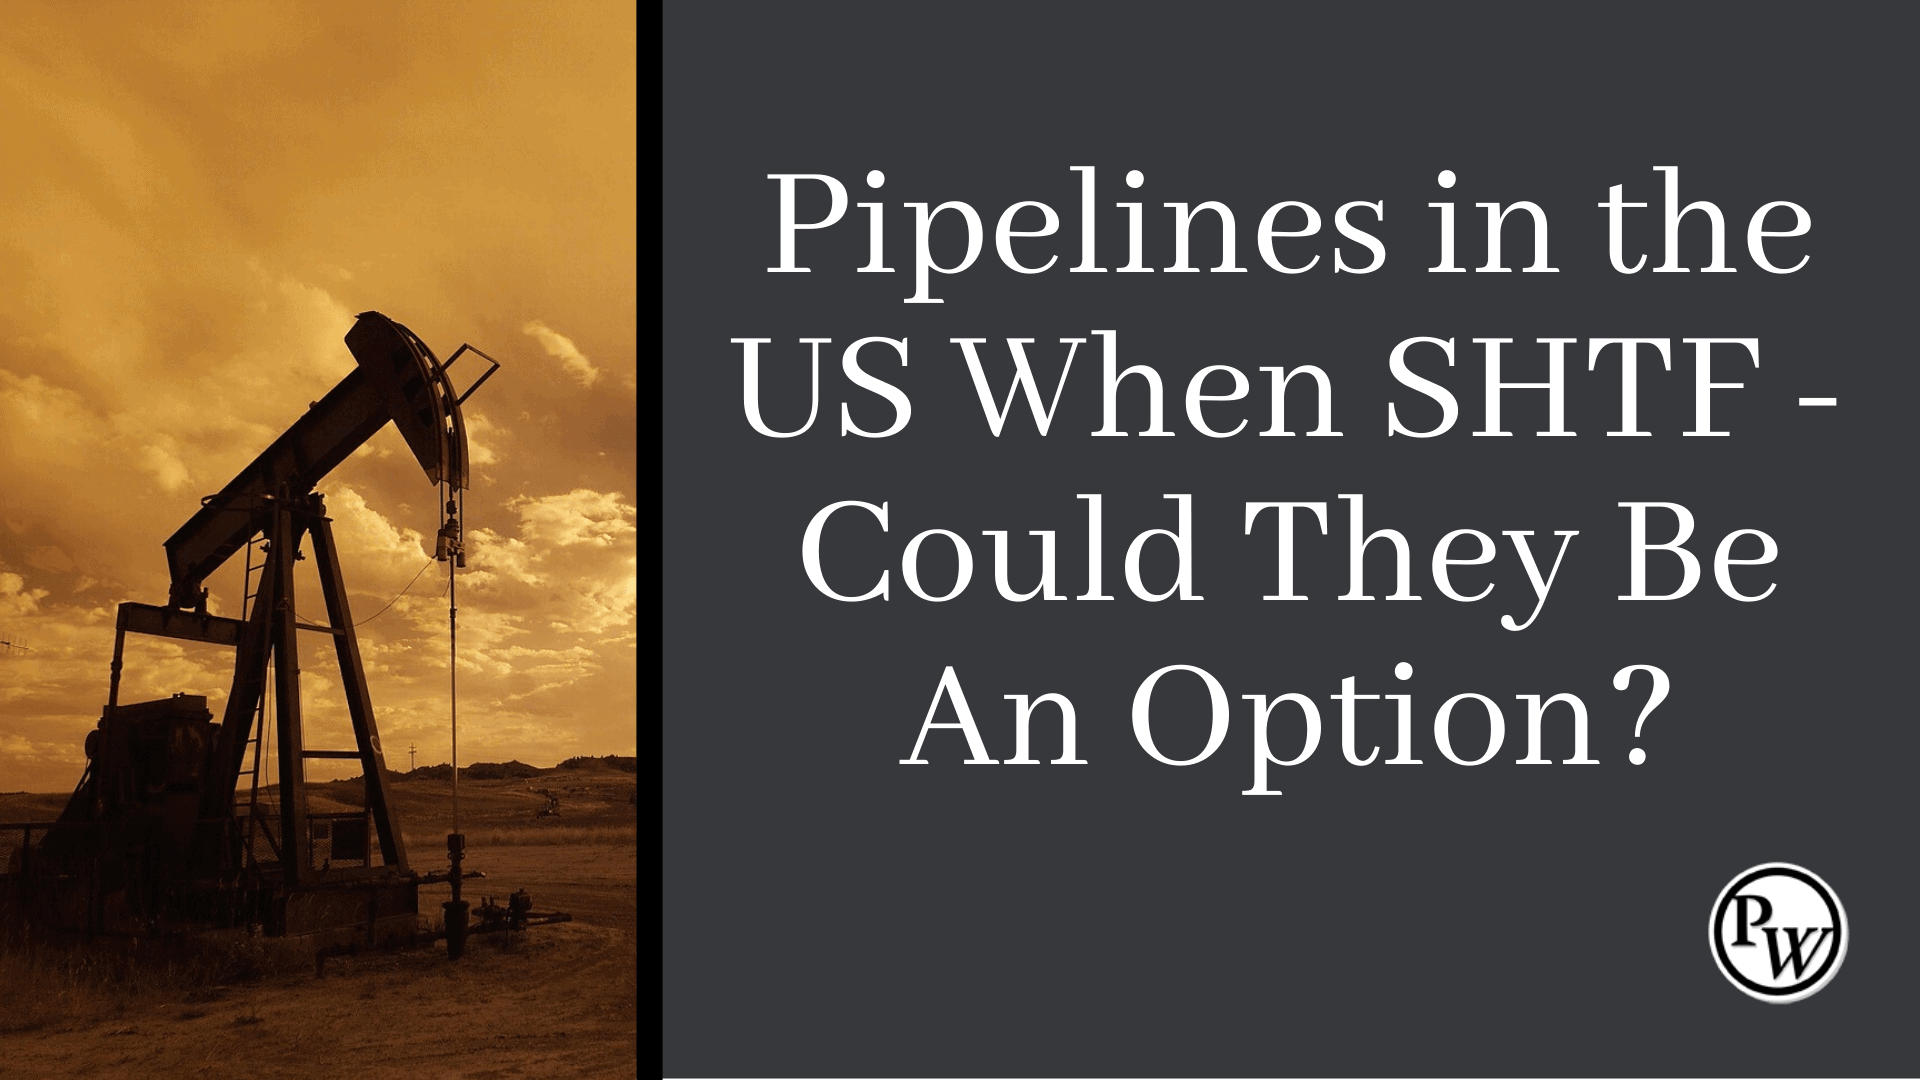 Pipelines in the US